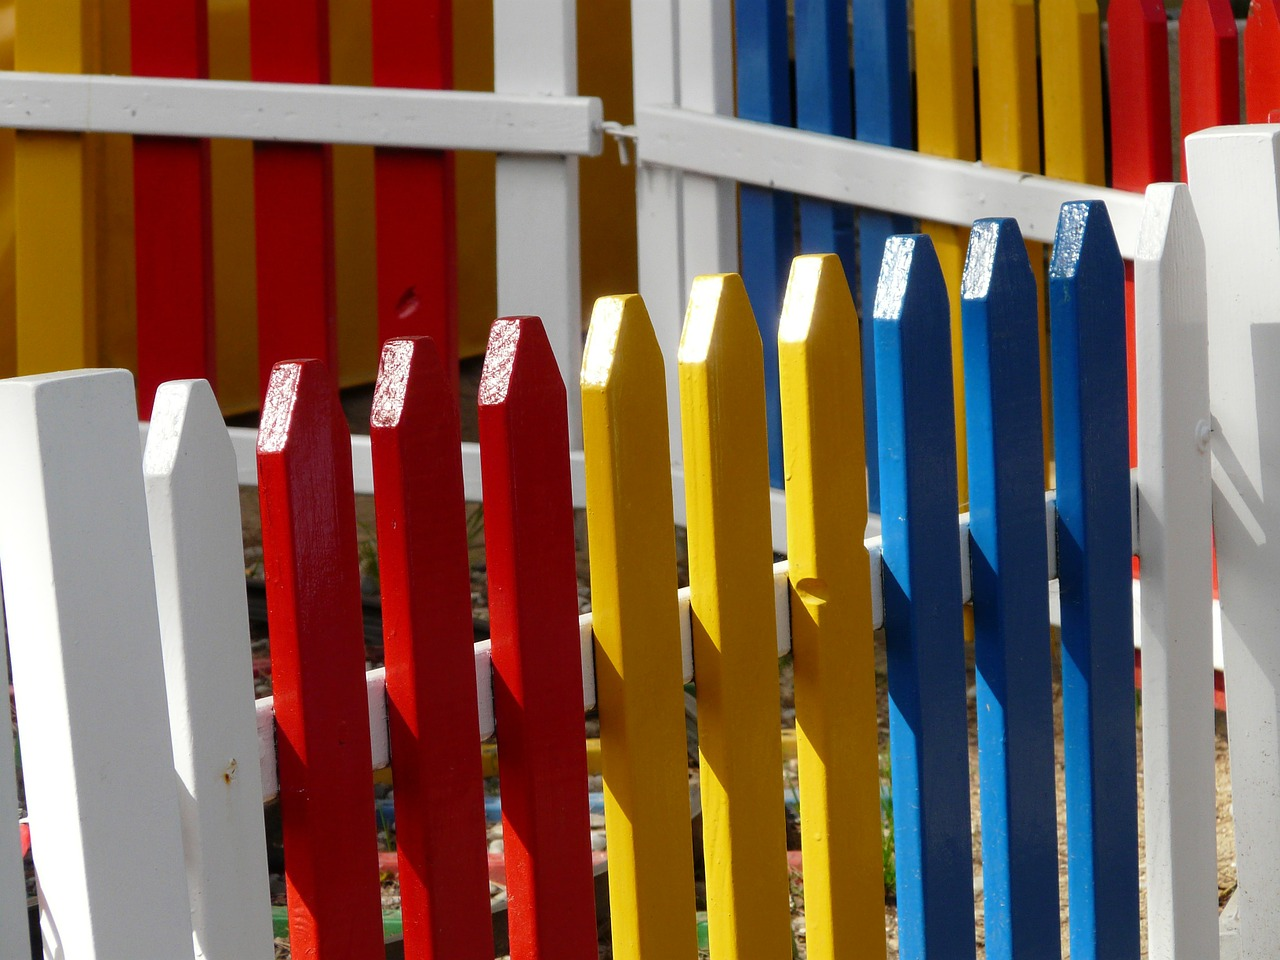 garden fence paling colorful free photo